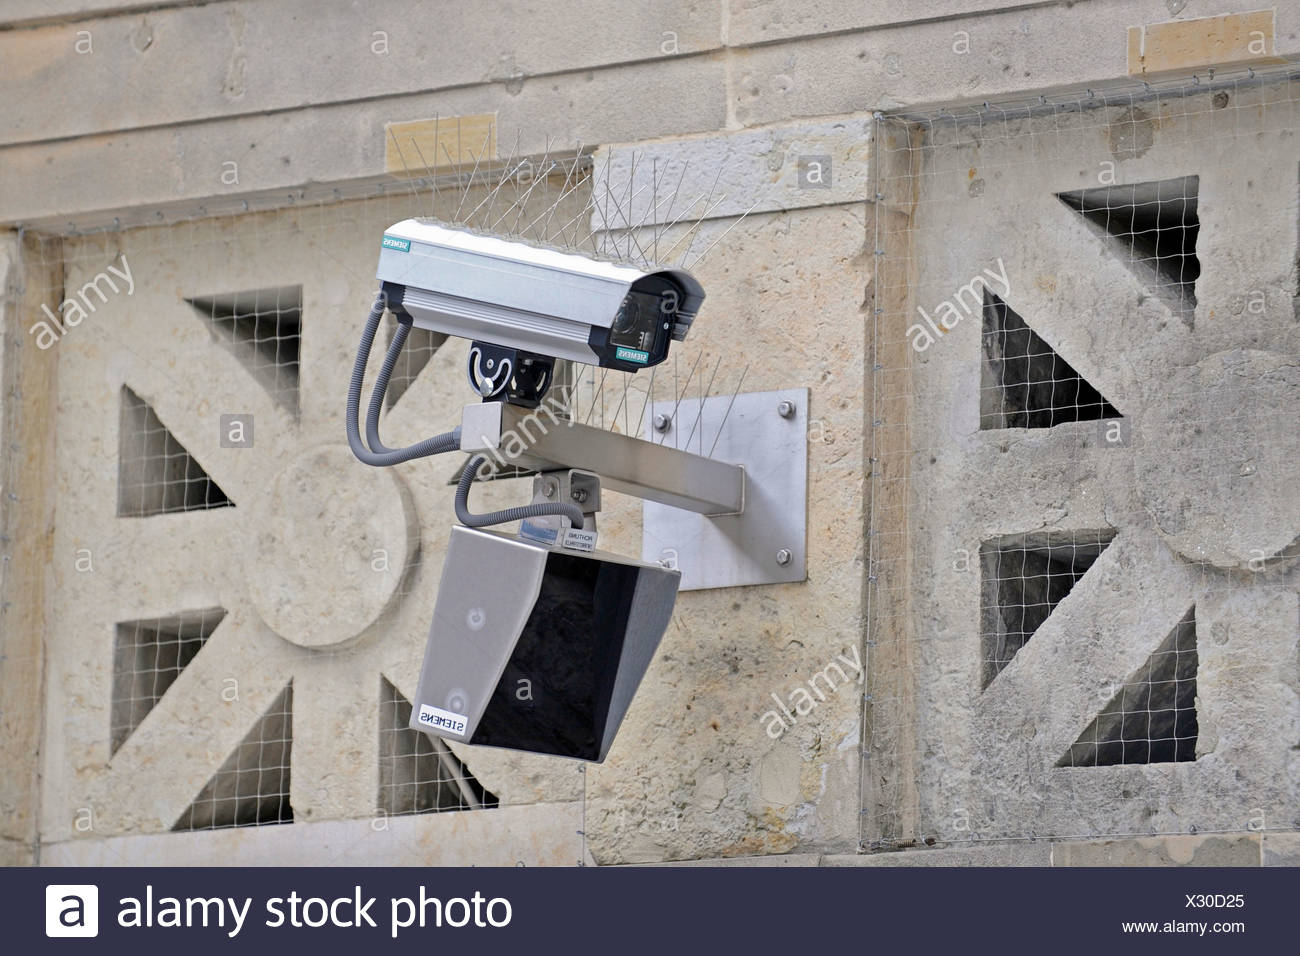 SUrveillance camera with passive infra-red sensor - Stock Image